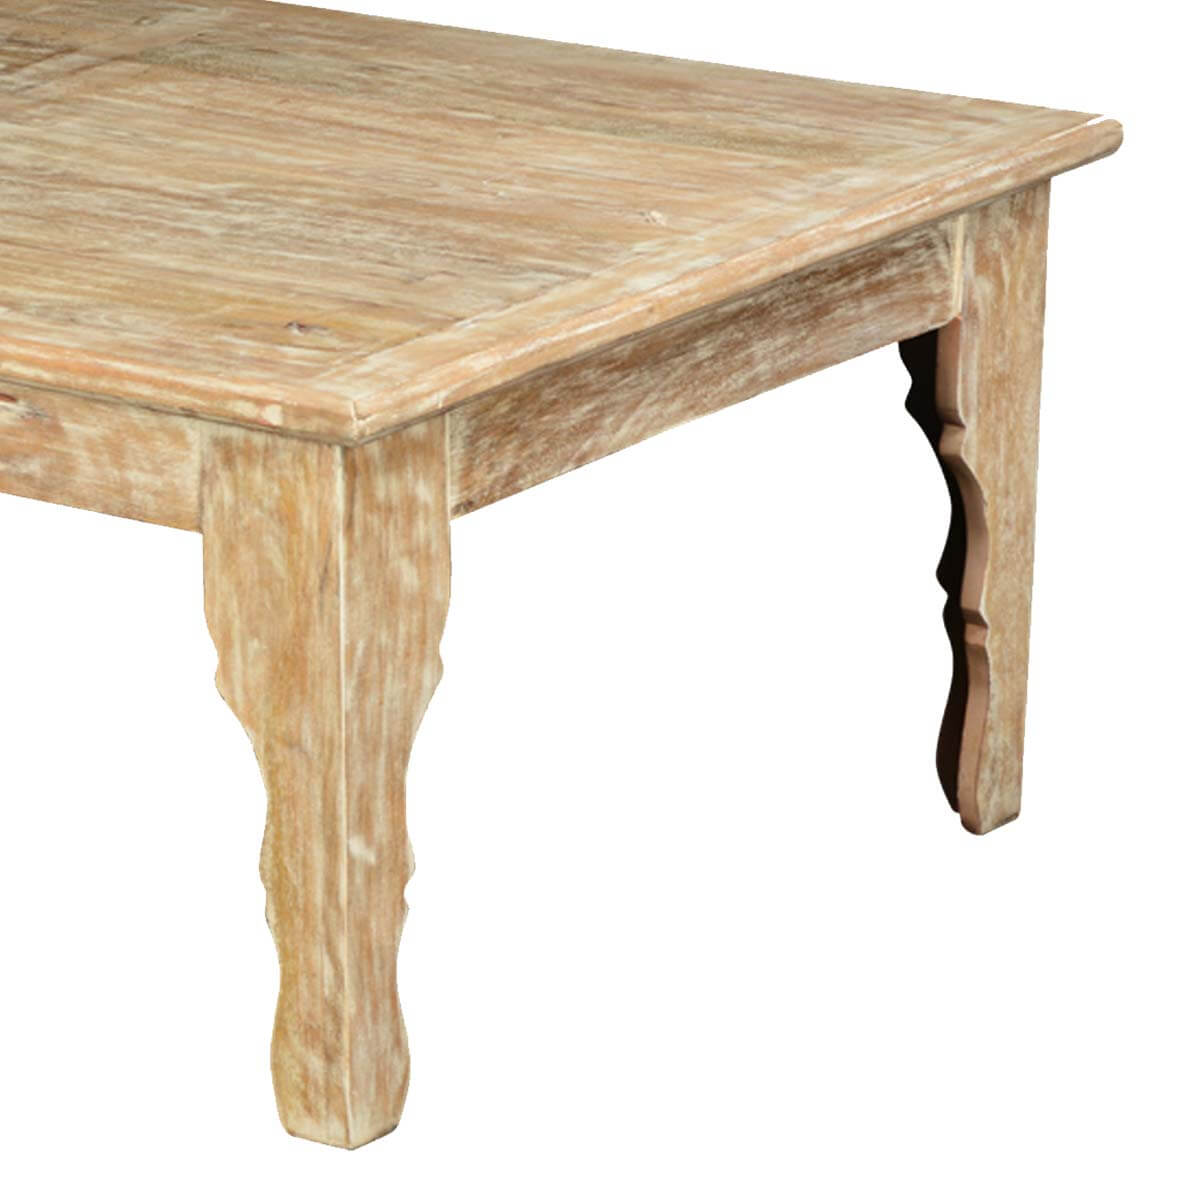 Winter White Mango Wood Rustic Coffee Table